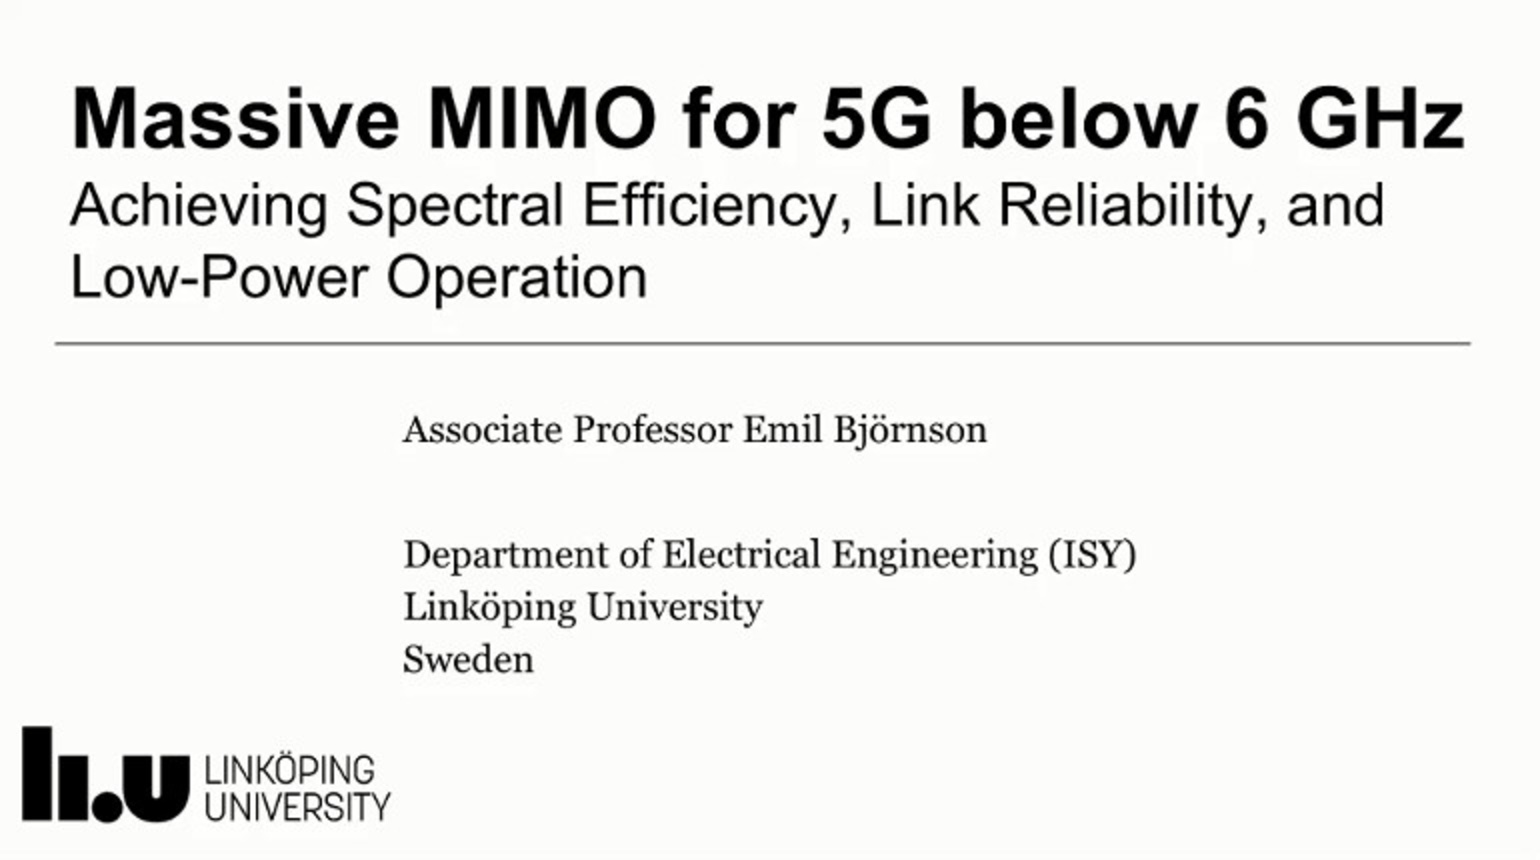 IEEE Future Networks: Massive MIMO for 5G Below 6 GHz: Achieving Spectral Efficiency, Link Reliability, and Low-Power Operation